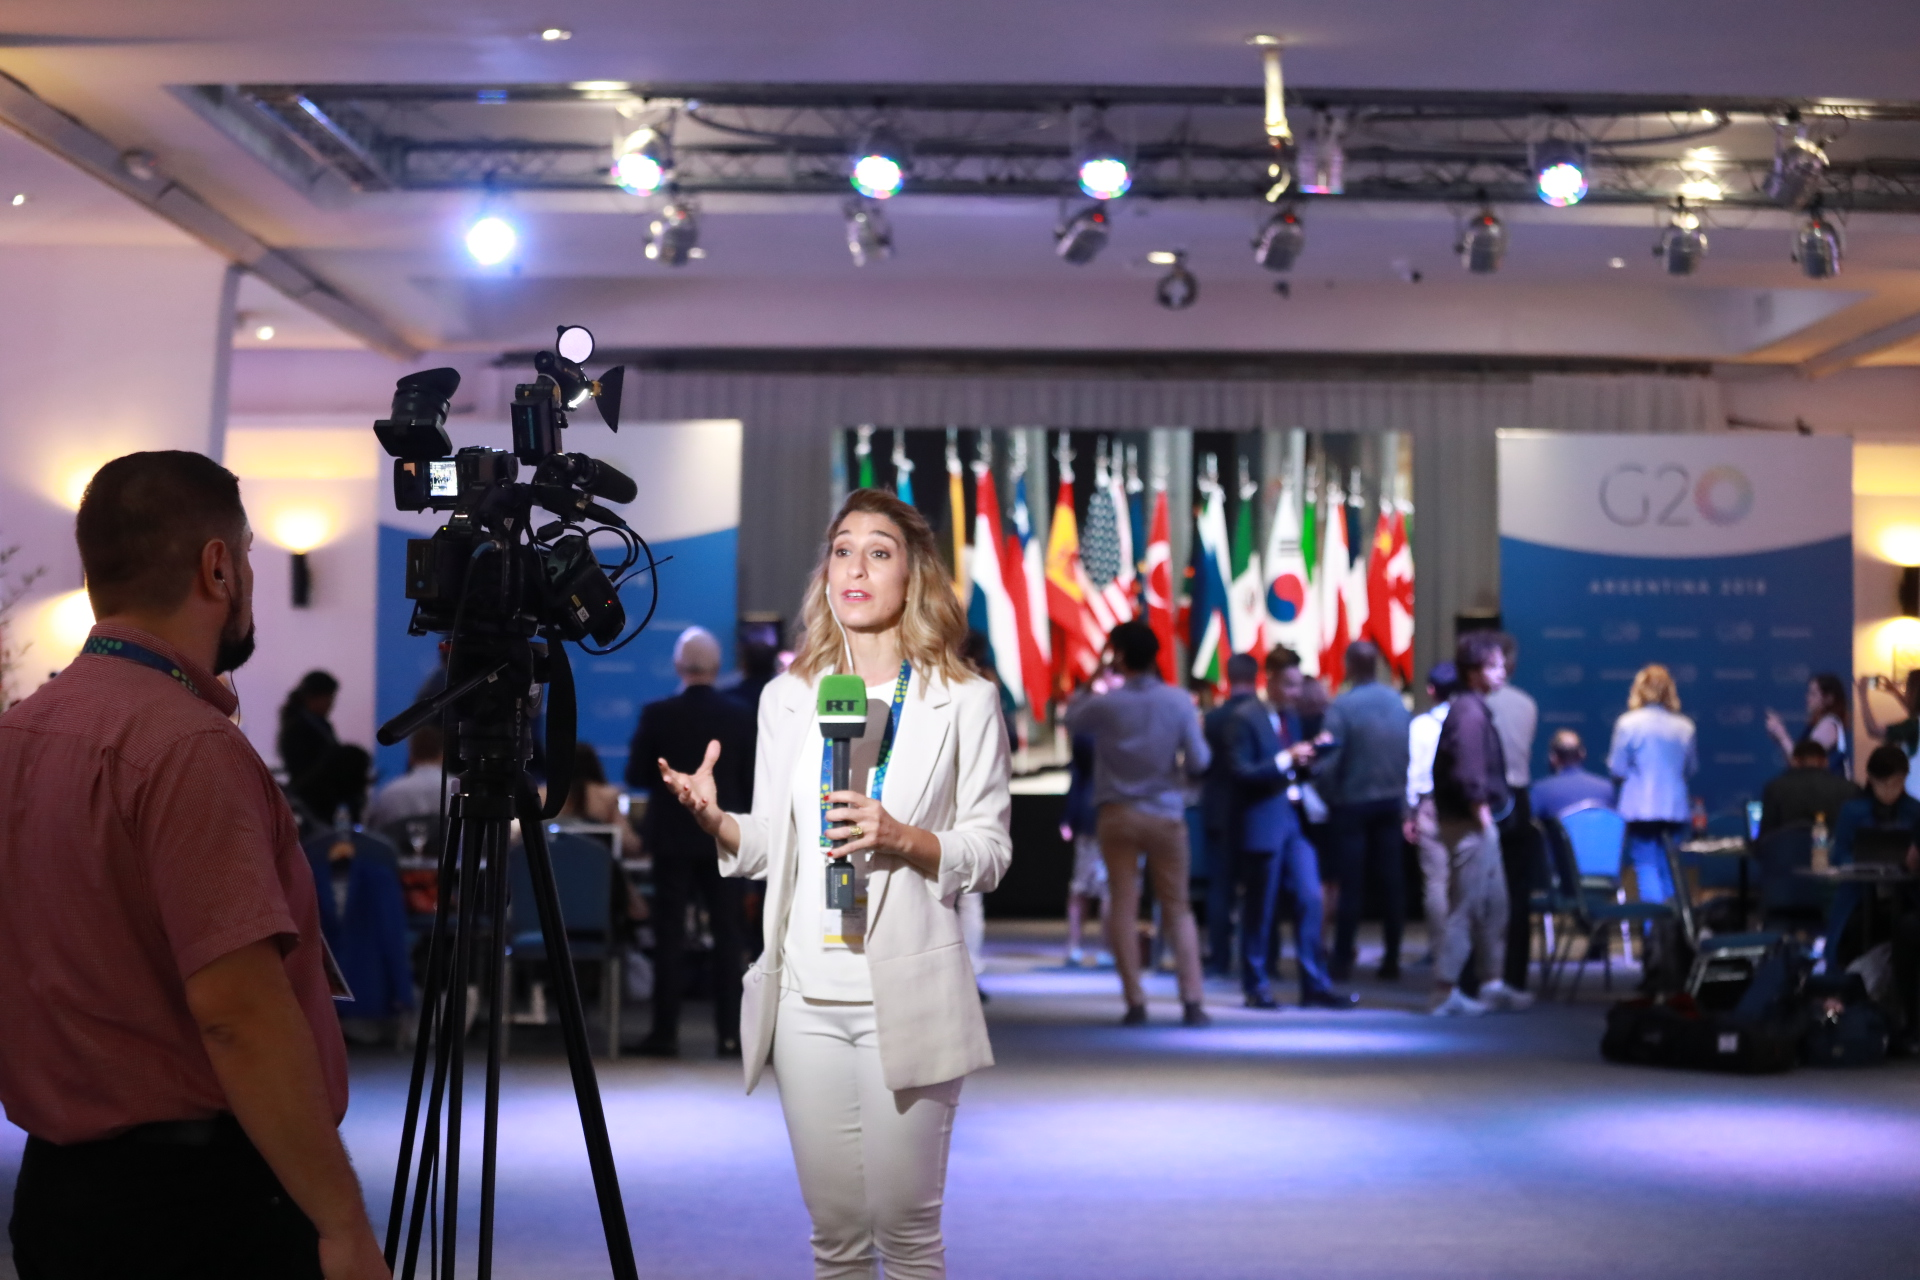 A glimpse into the media center at G20 summit